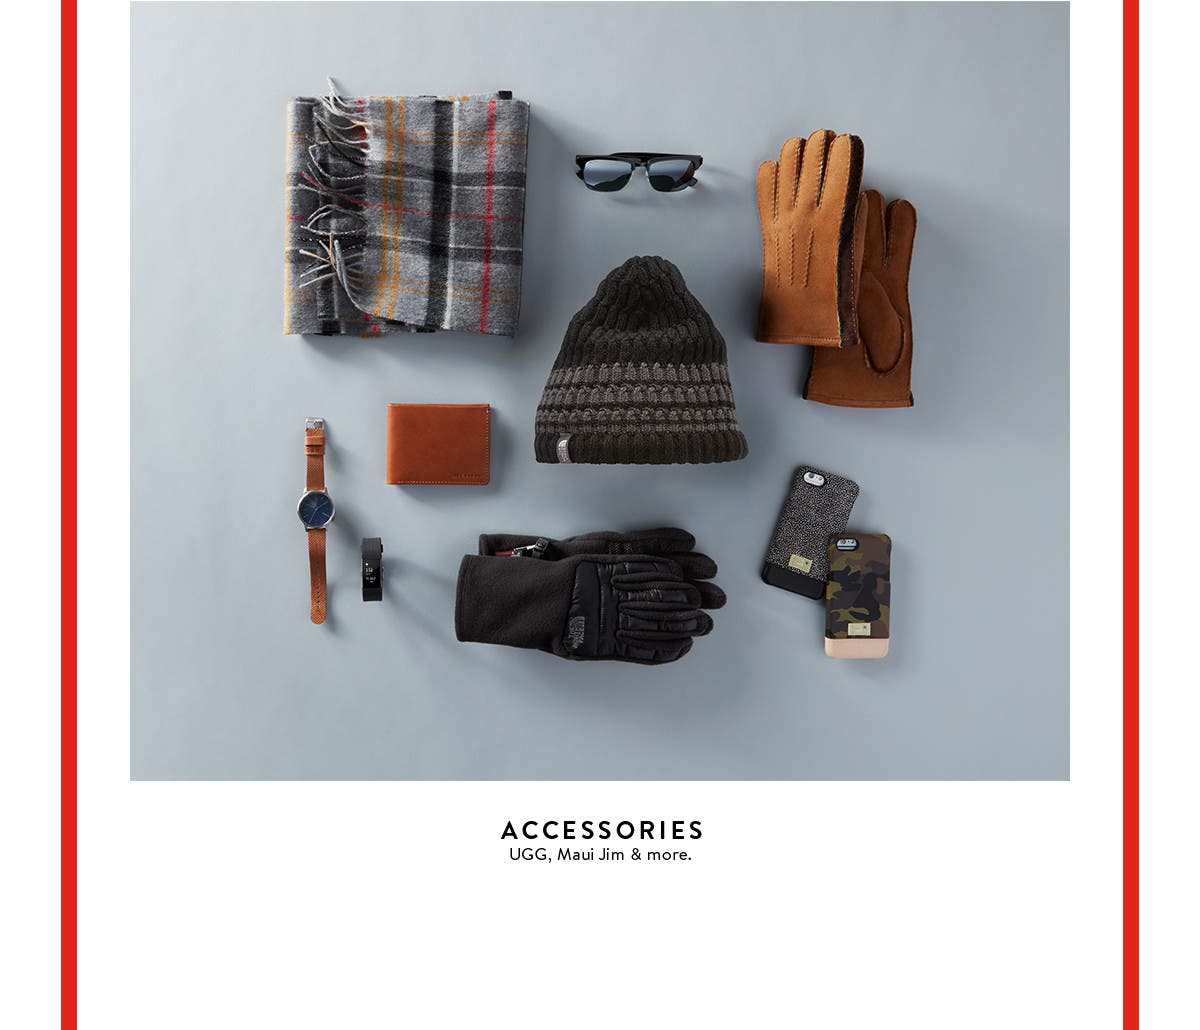 Accessories from UGG, Maui Jim & more.